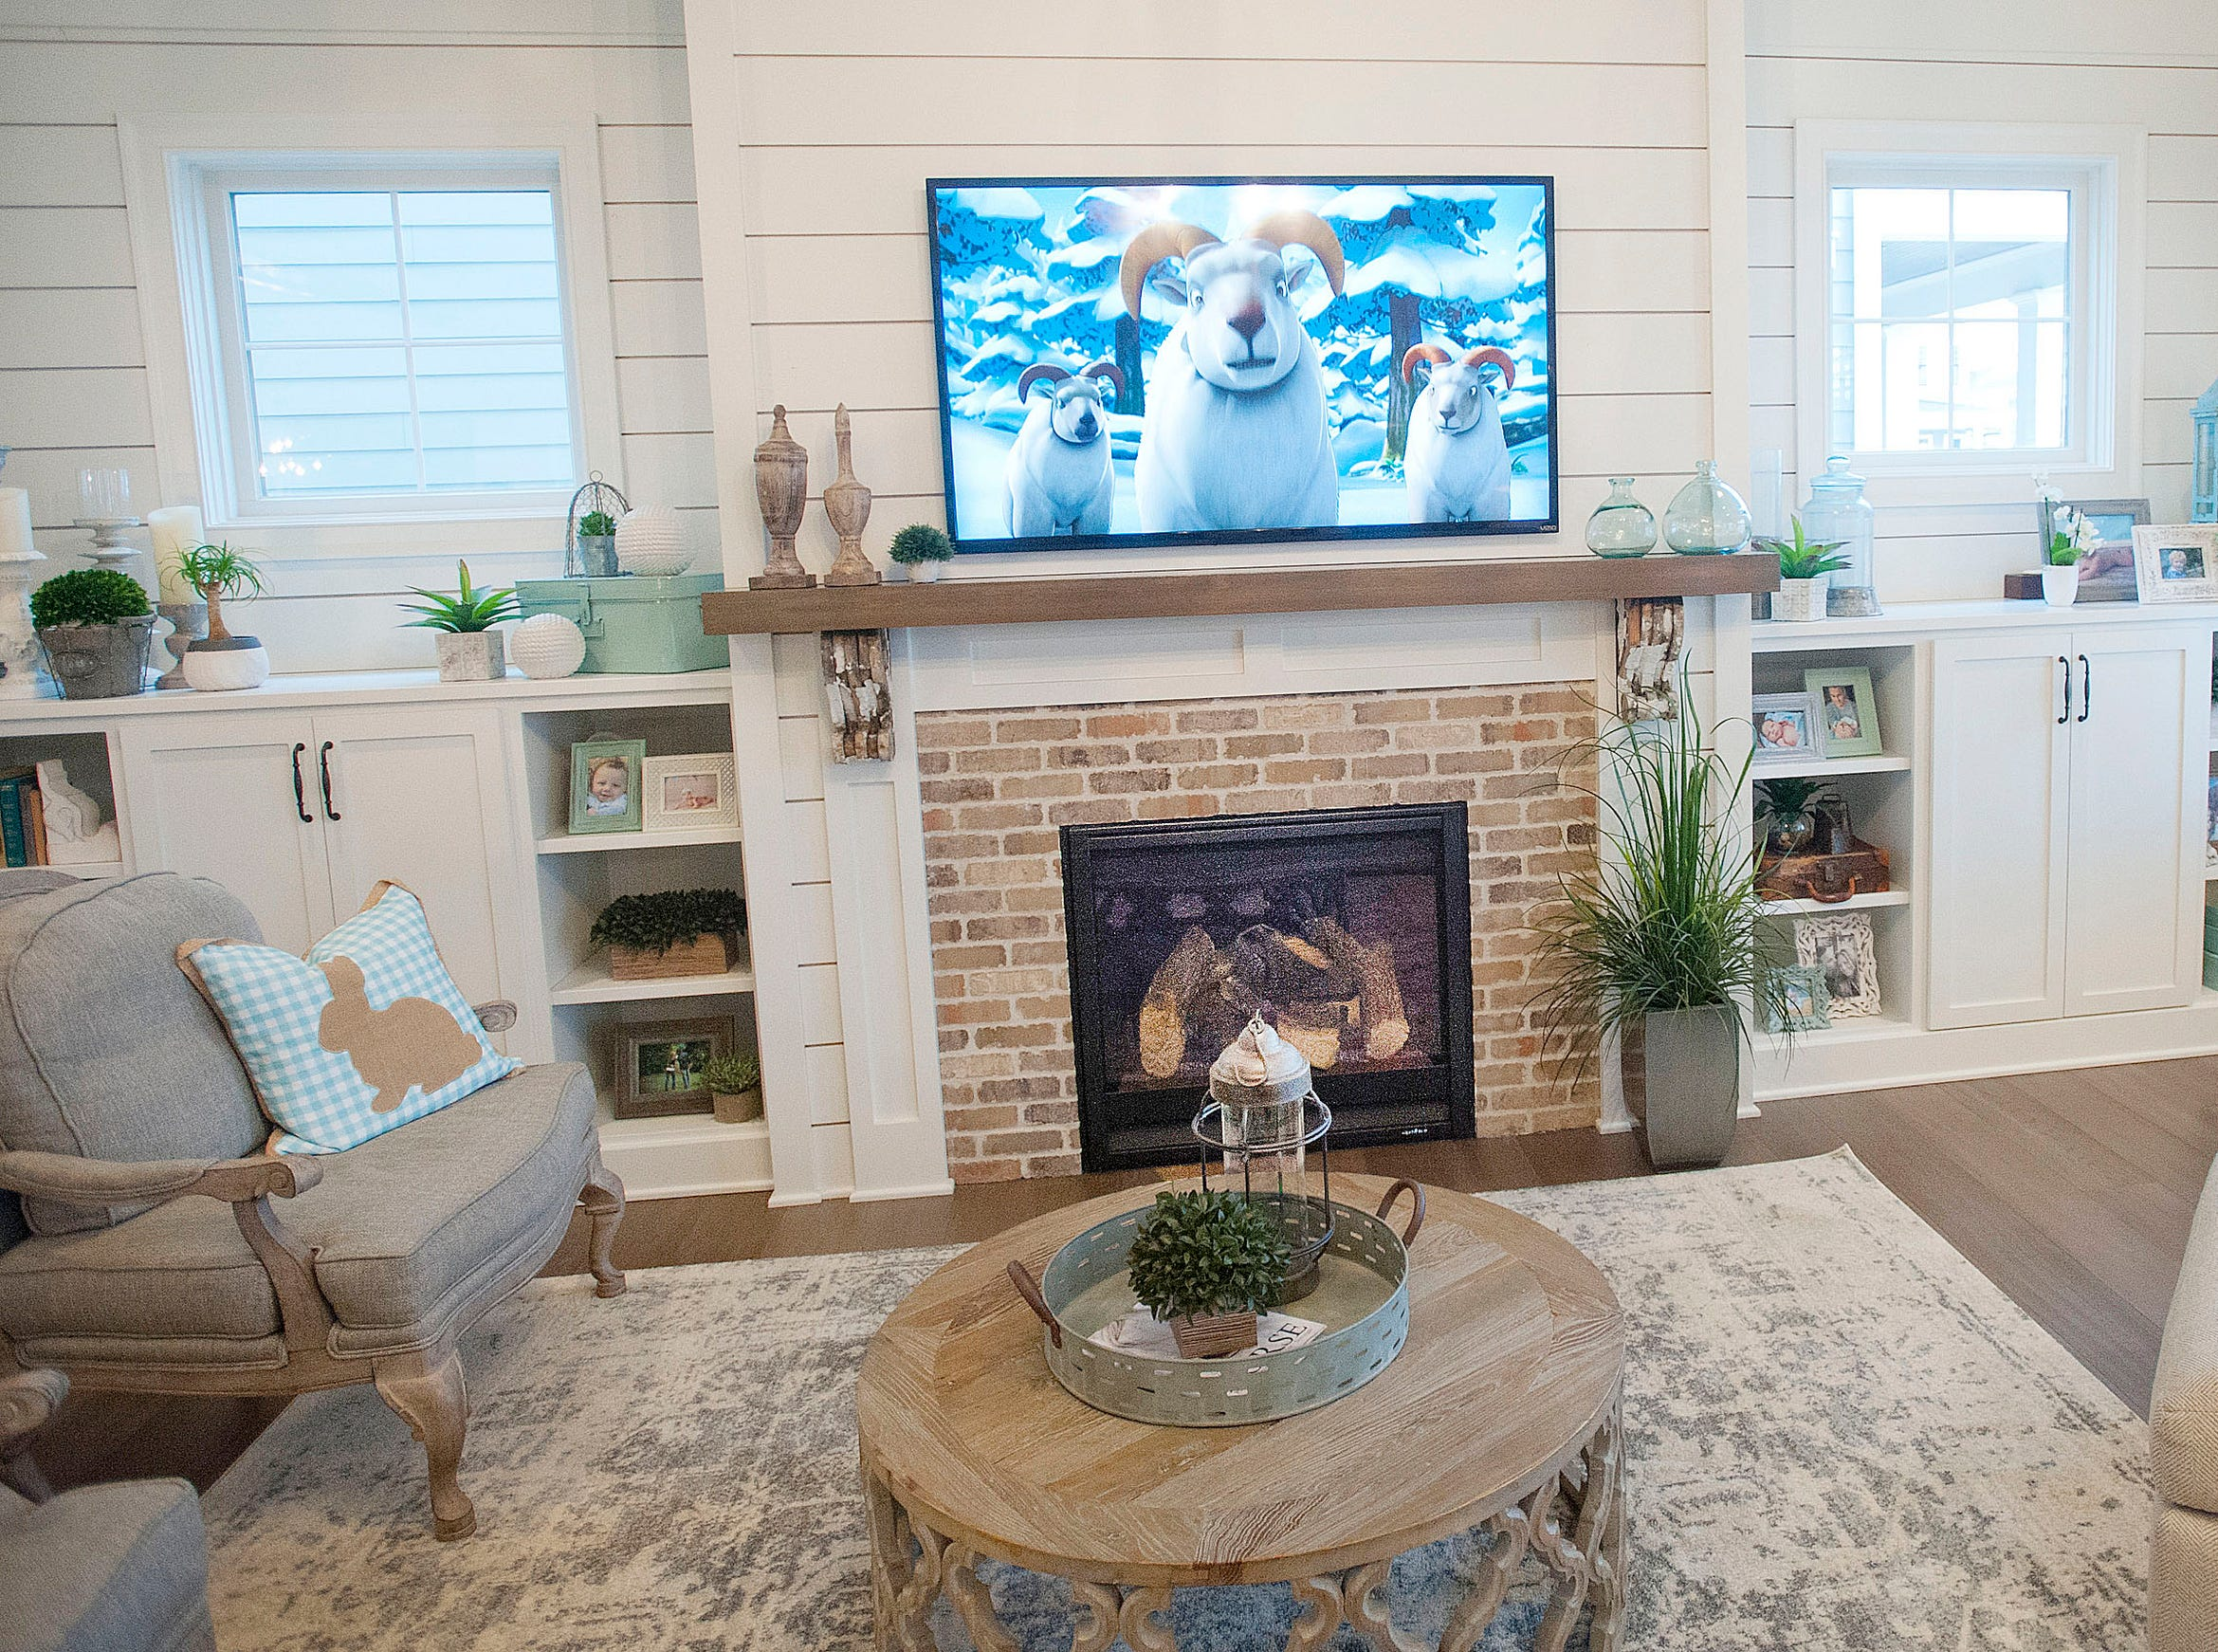 An animated movie plays on the television screen of the Hannah living room. The room wall is decorated with shiplap, as are other rooms in home.01 March 2019